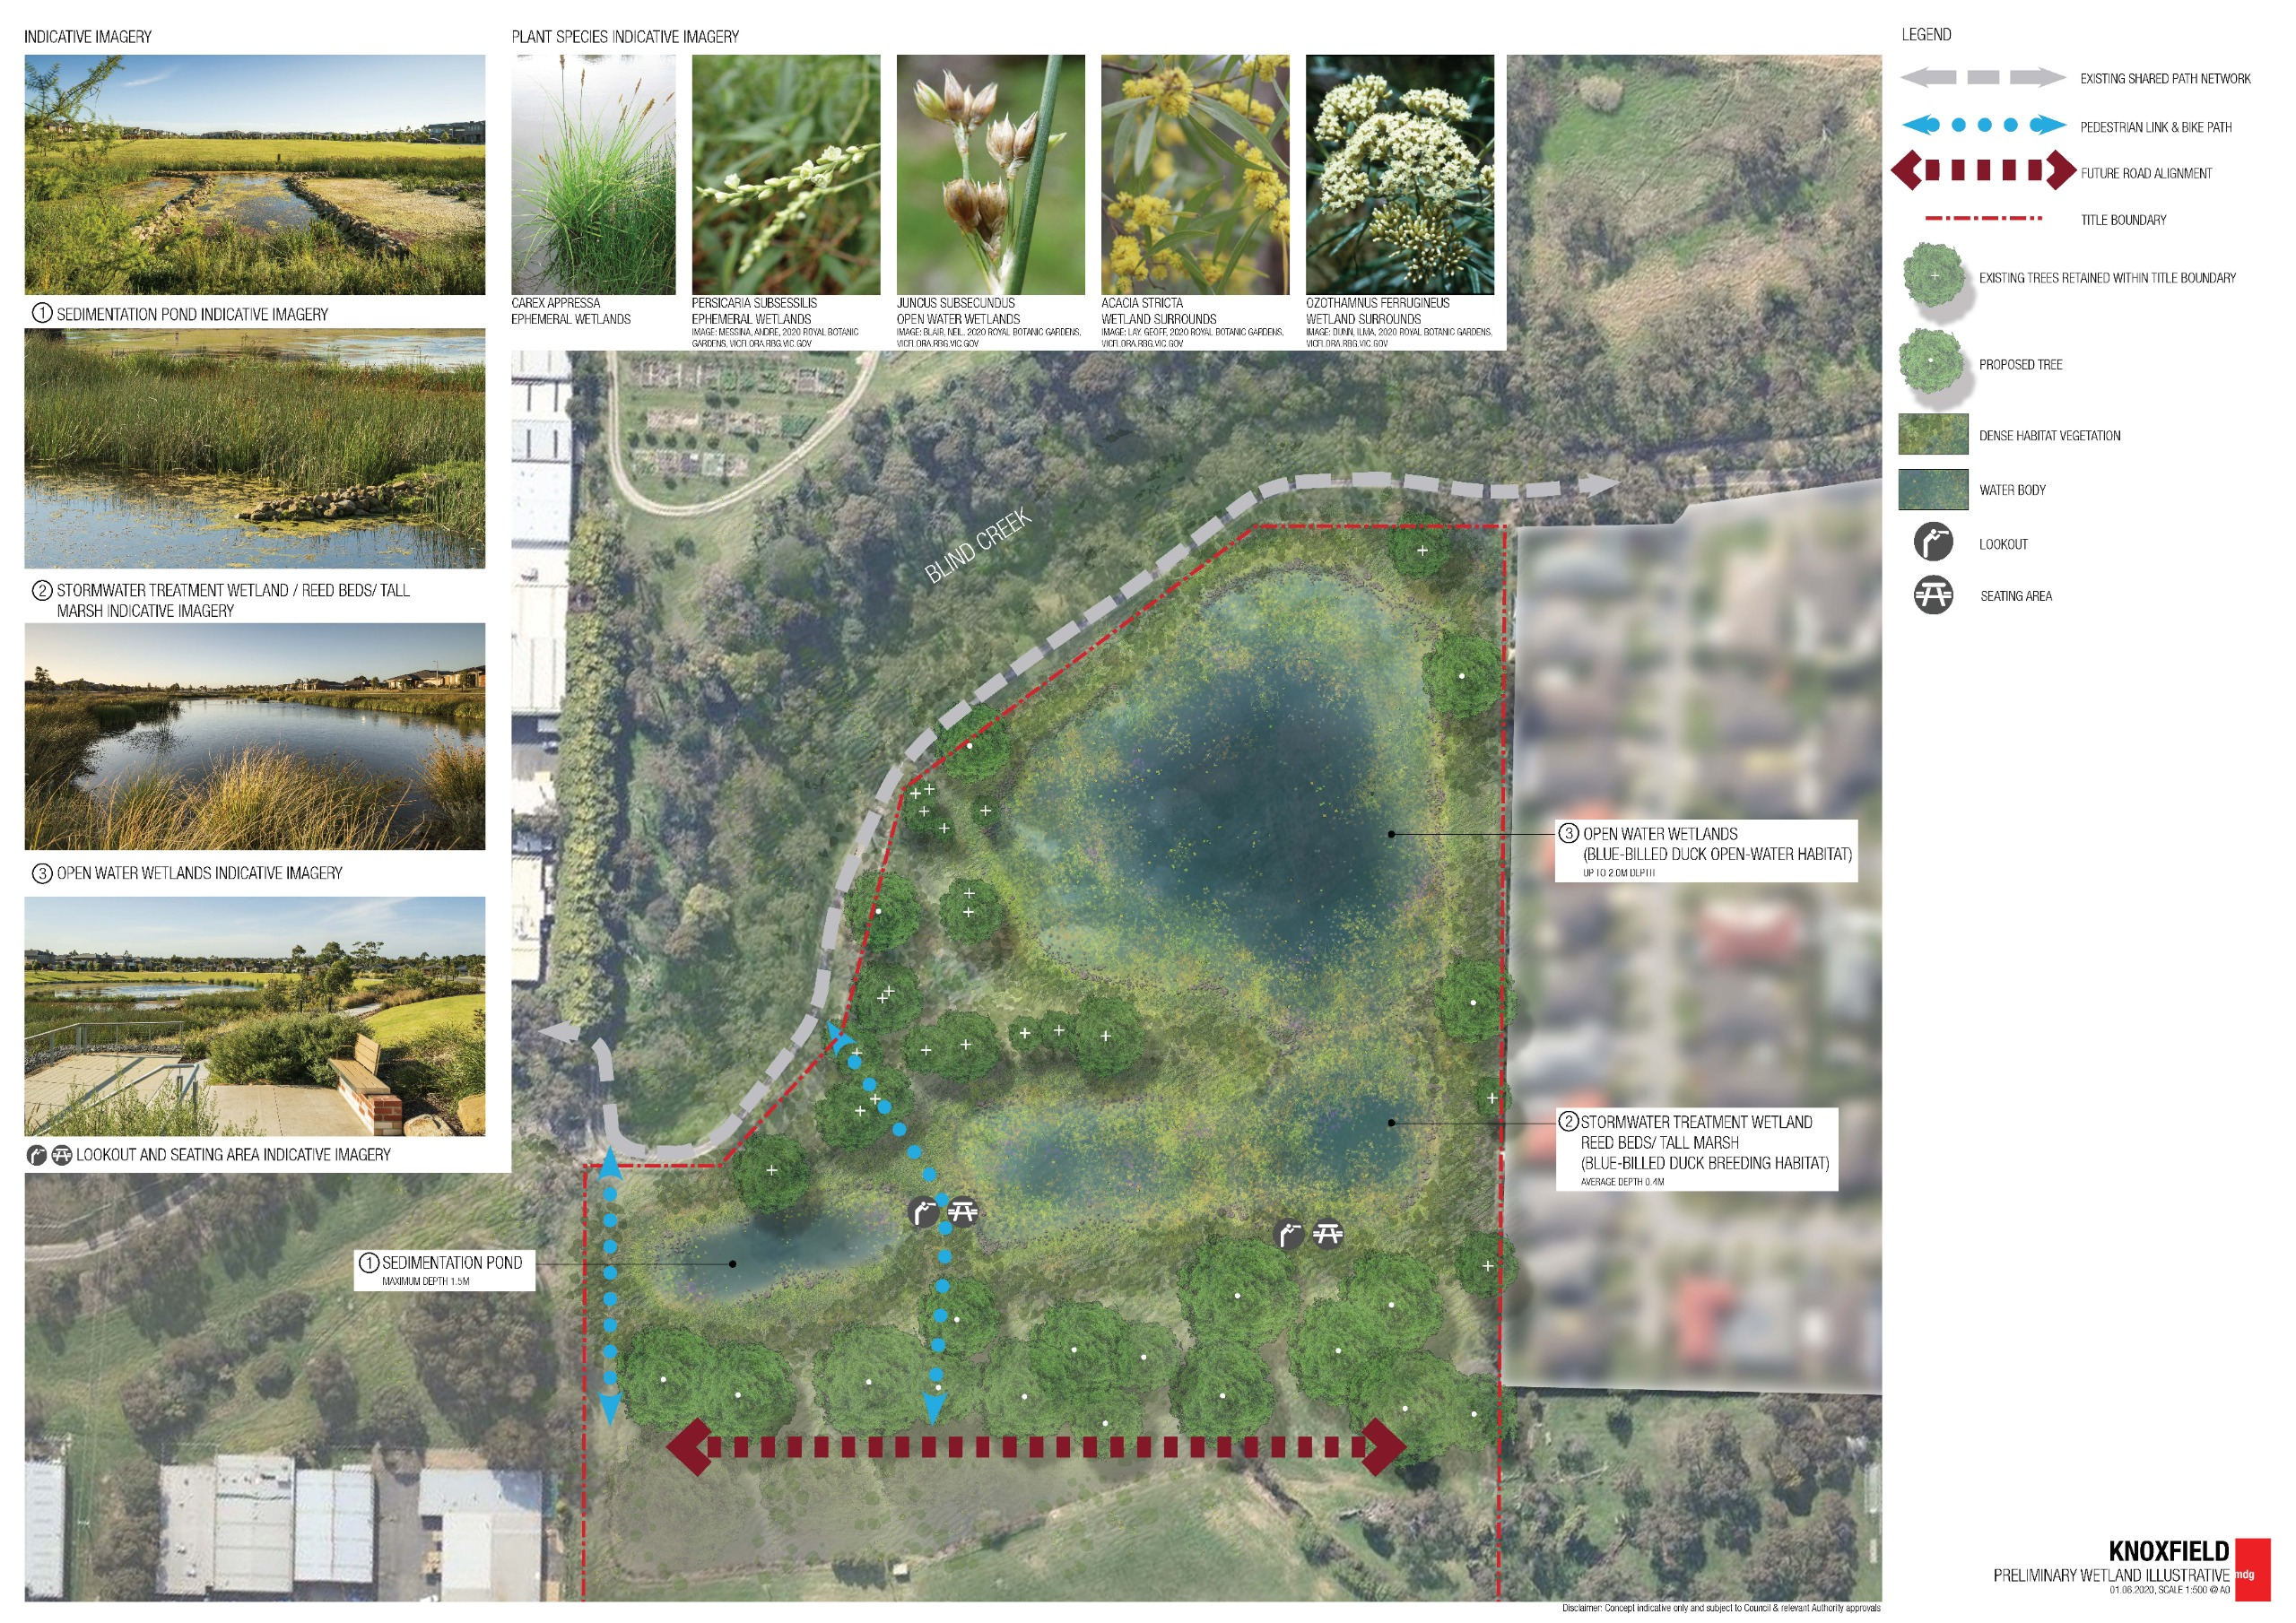 The image shows an illustration of the new wetland. The new wetland has three waterbodies which include a sedimentation pond, a stormwater treatment wetland with reed beds and tall marsh which is good for Blue-billed Duck breeding and an open-water wetlan